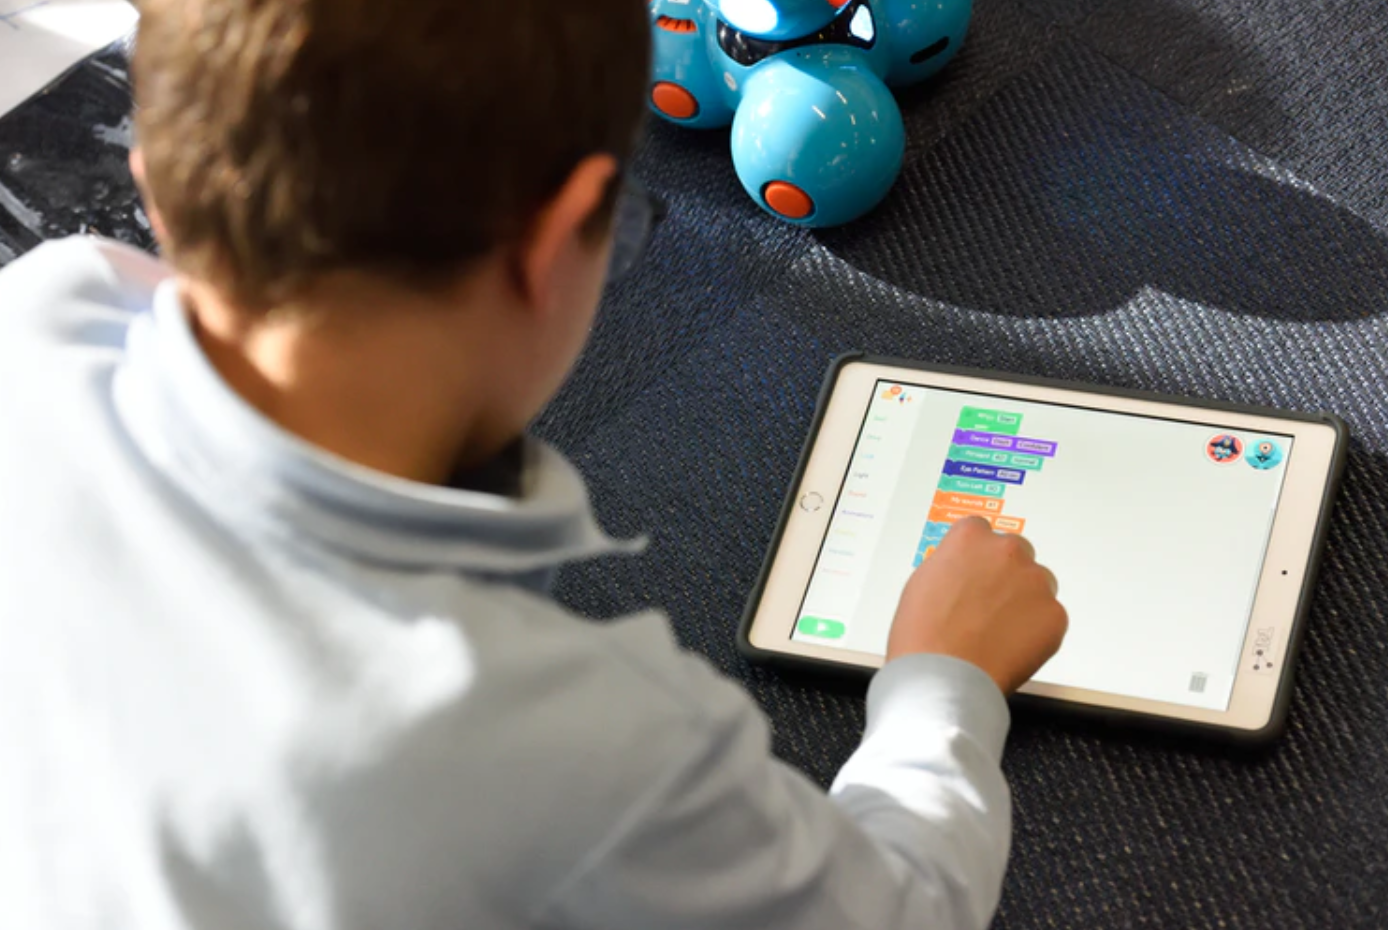 Young male student using tablet; image by stem.T4L, via Unsplash.com.